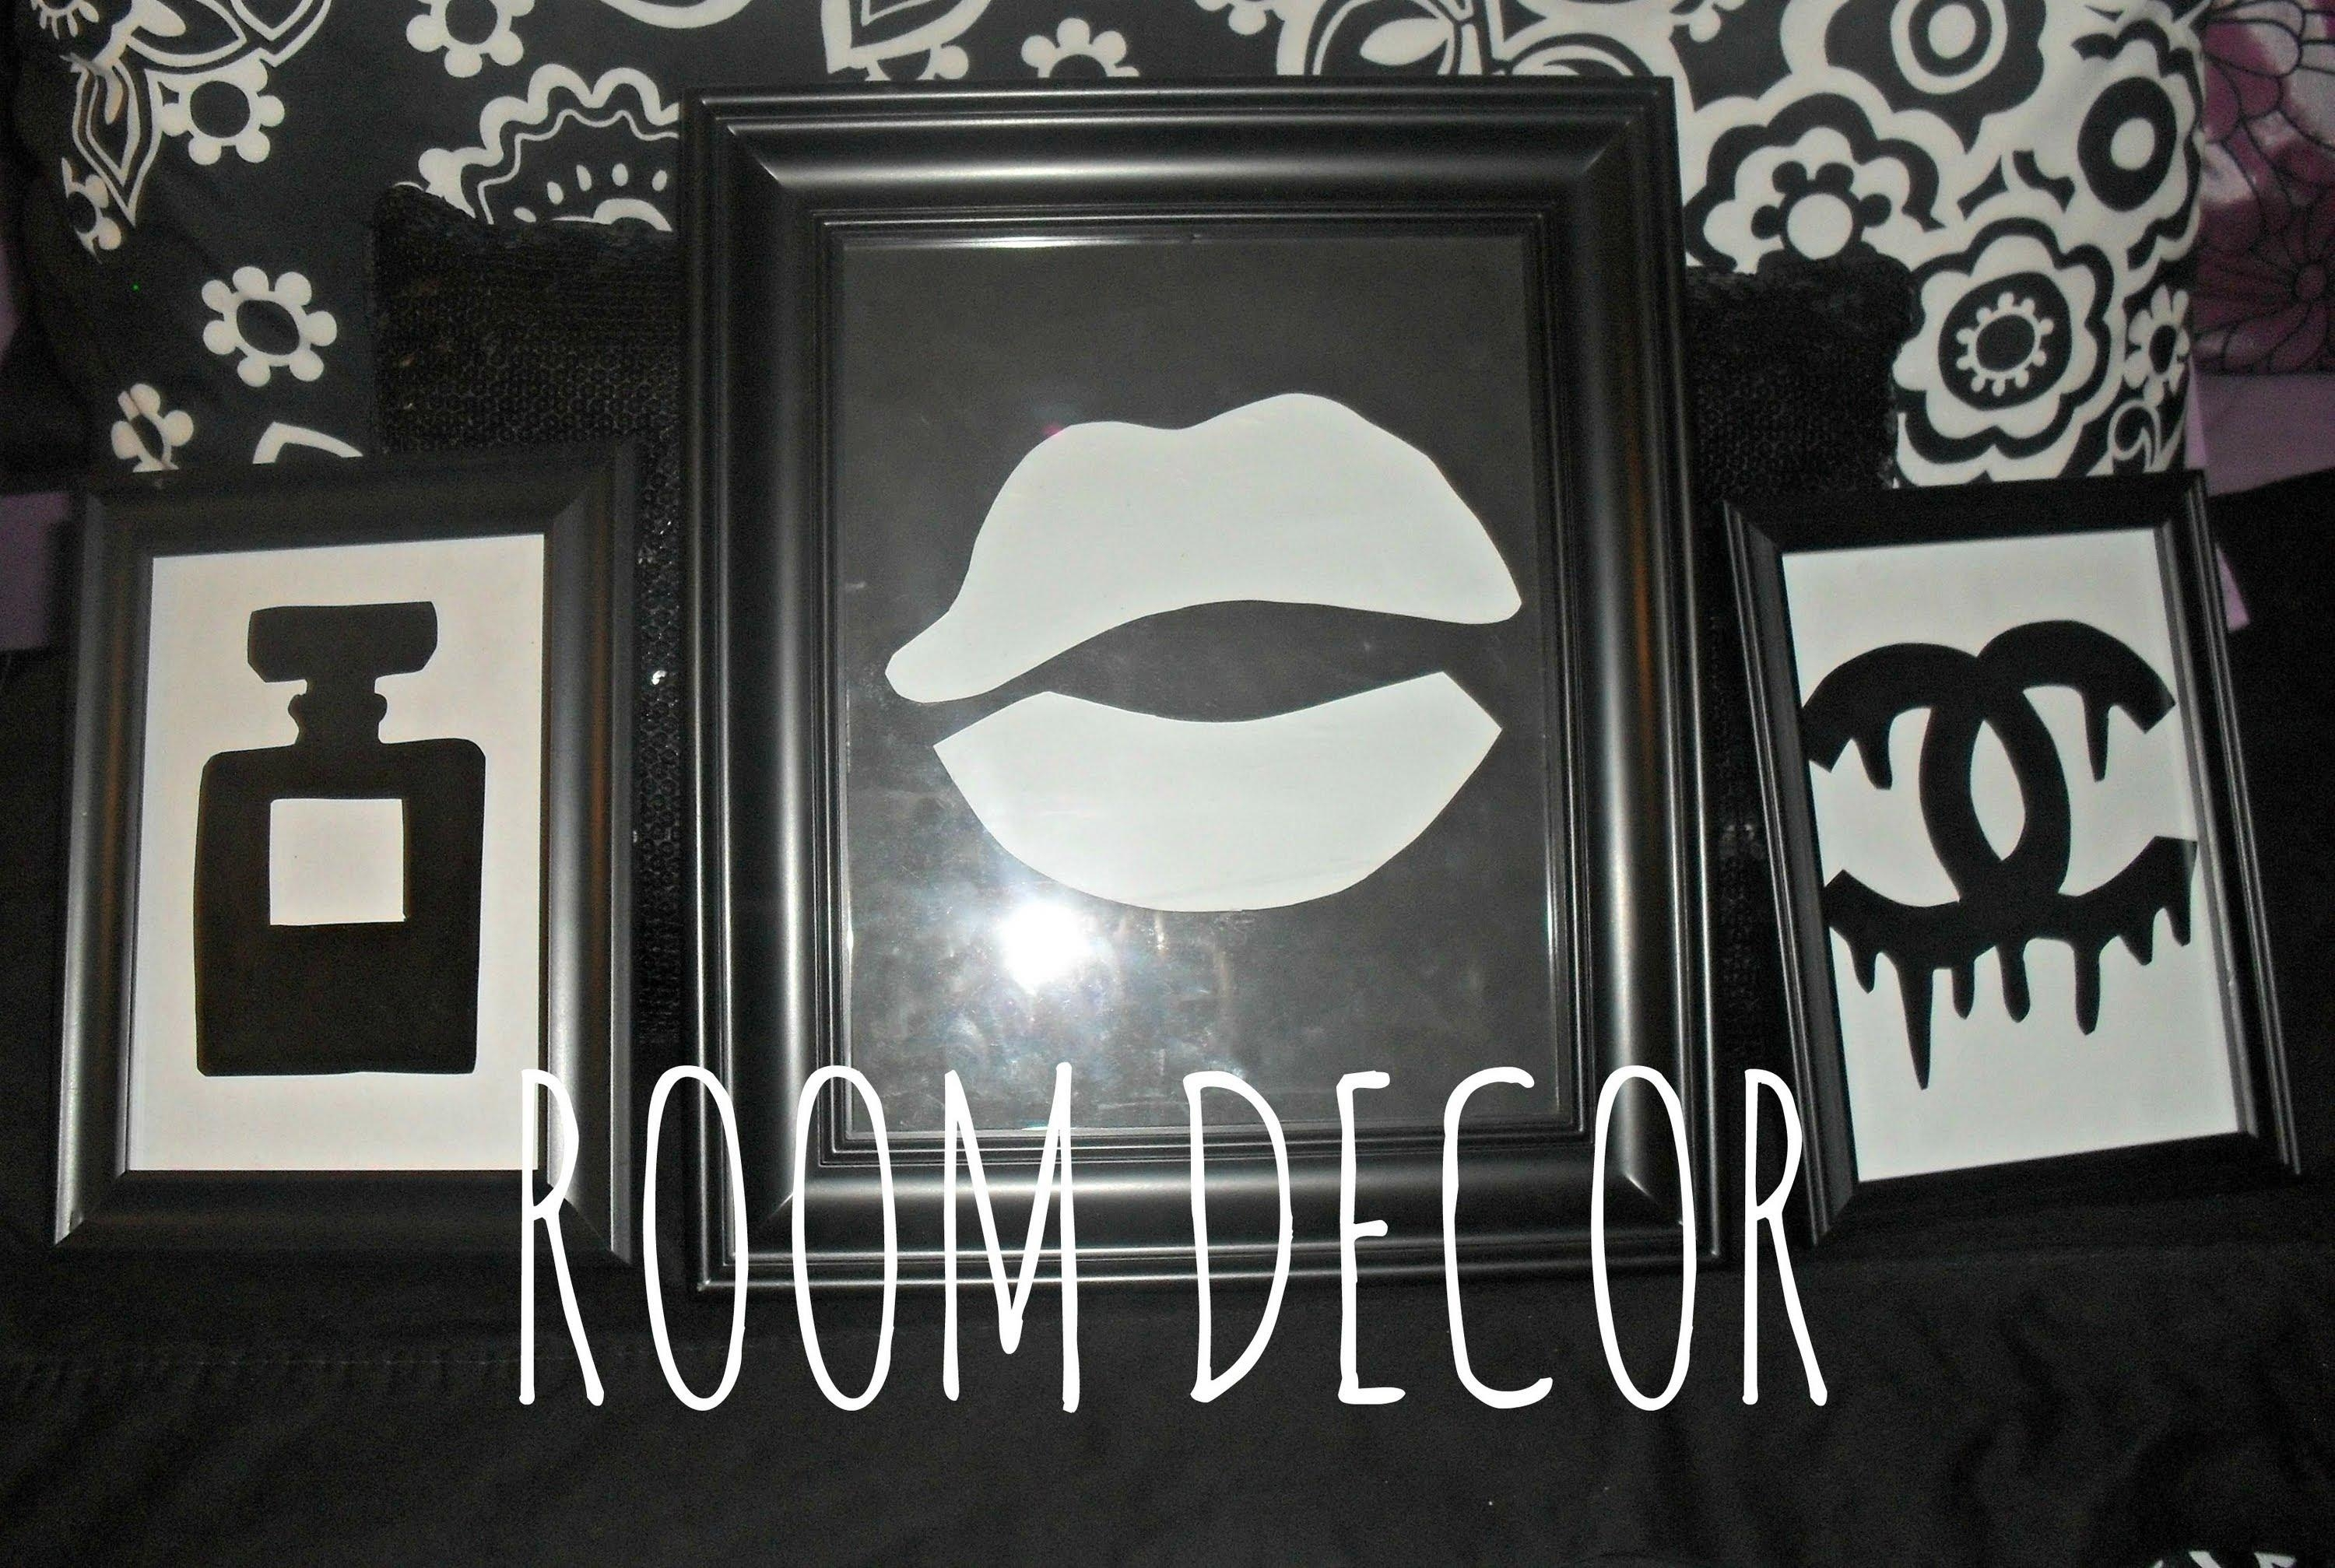 Diy Room Decor: Stencil Wall Decor (Chanel Dripping Logo/perfume Pertaining To Chanel Wall Decor (Image 12 of 20)